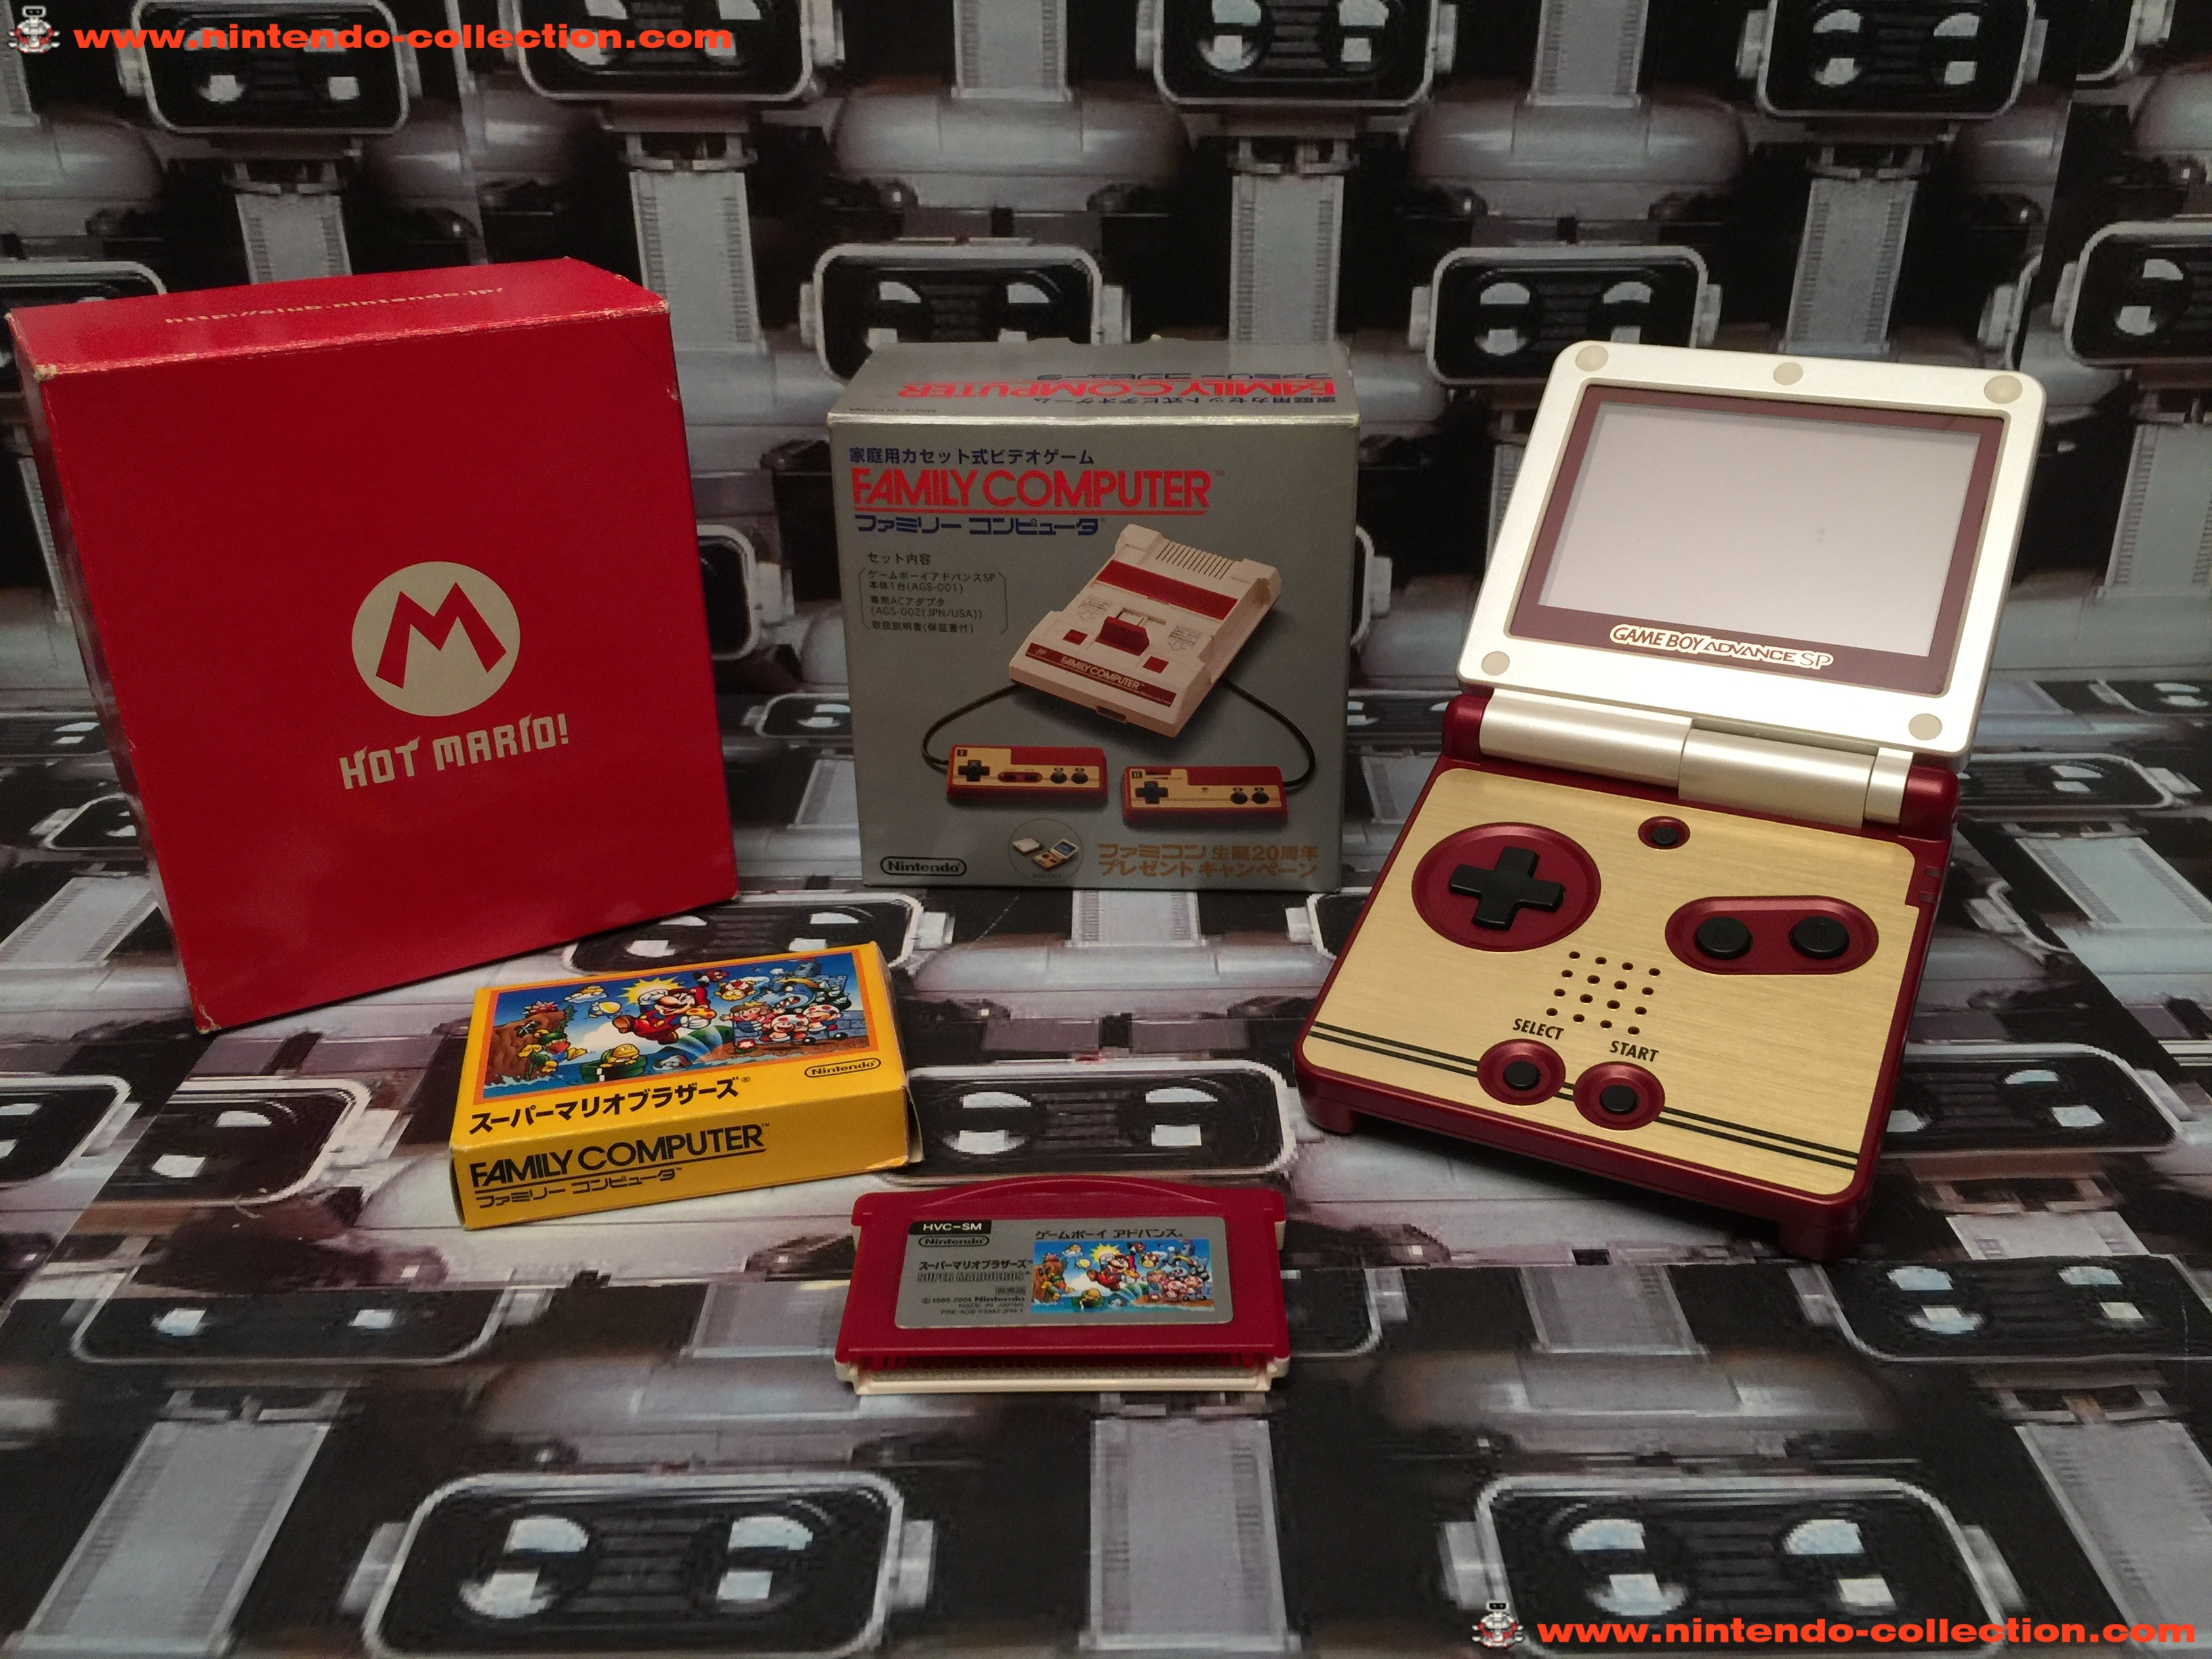 www.nintendo-collection.com - Gameboy Advance GBA SP Famicom 20th Anniversary Hot Mario Club Nintend